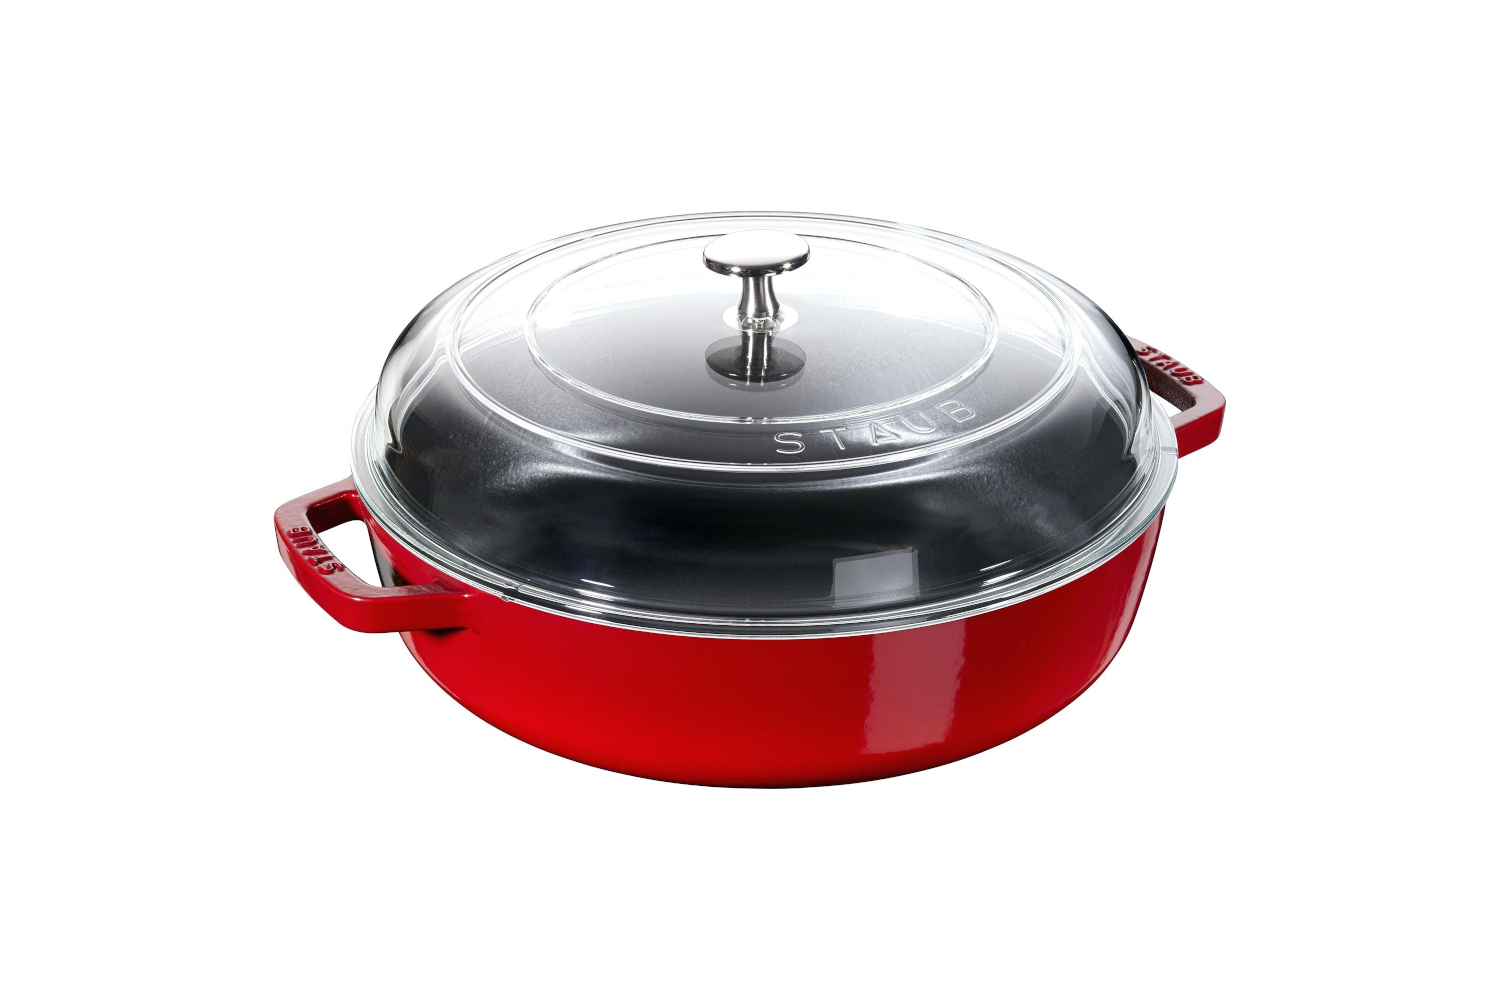 Staub Cast Iron 4 qt. Universal Deluxe Pan with Glass Lid - Cherry